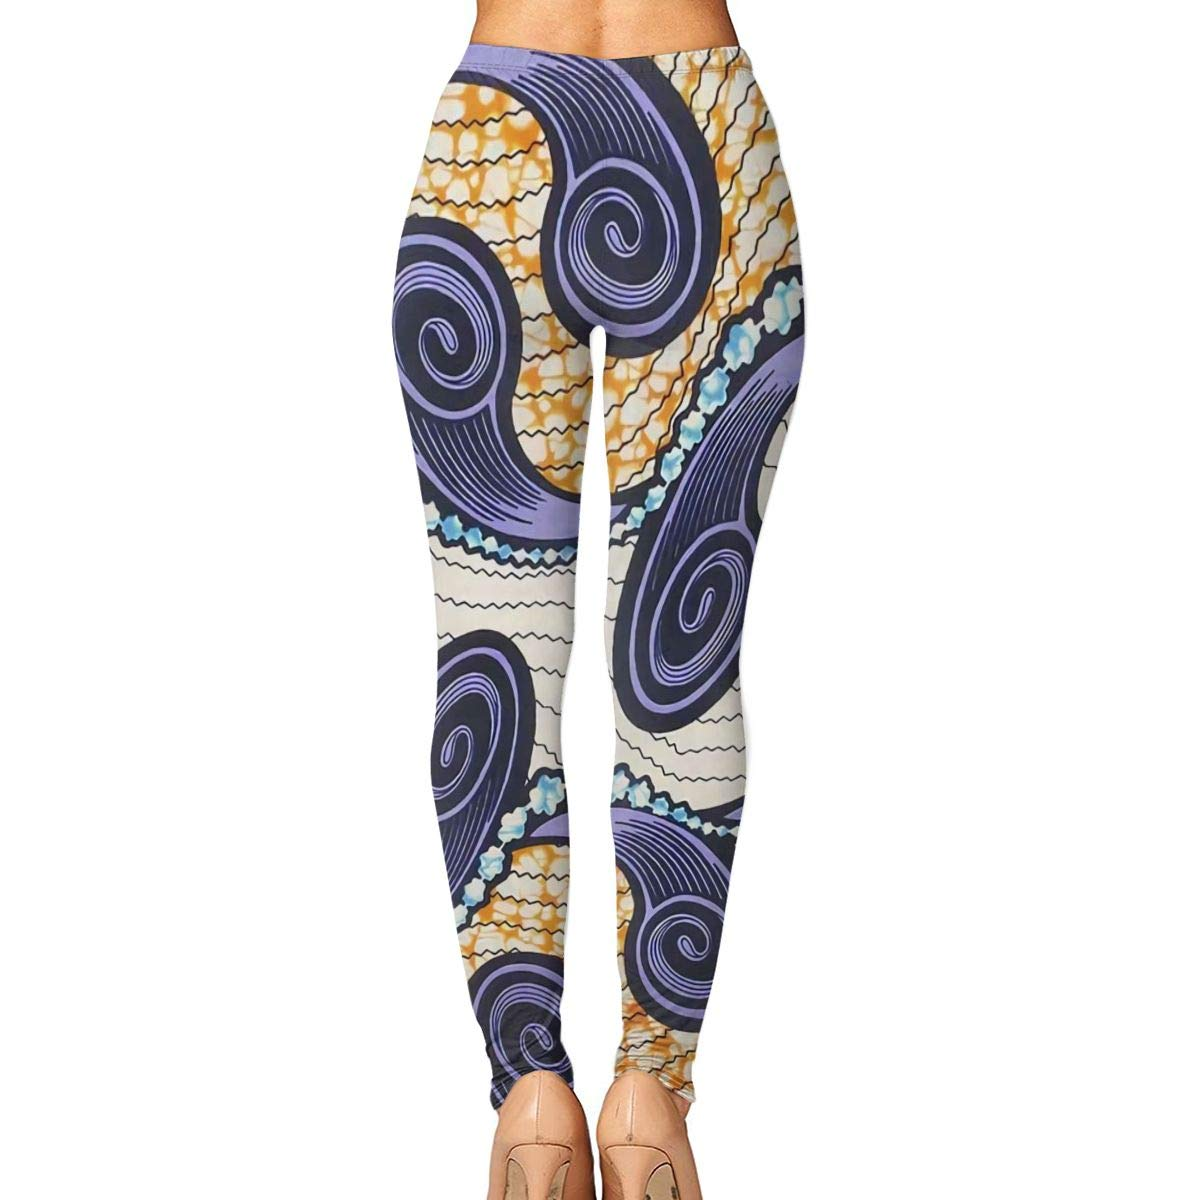 Ayf-S478 African Fabric Super Wax Print Womens Yoga Pants Sports Workout Leggings Athletic Tight Pants Fitness Power Stretch Yoga Leggings Tummy Control